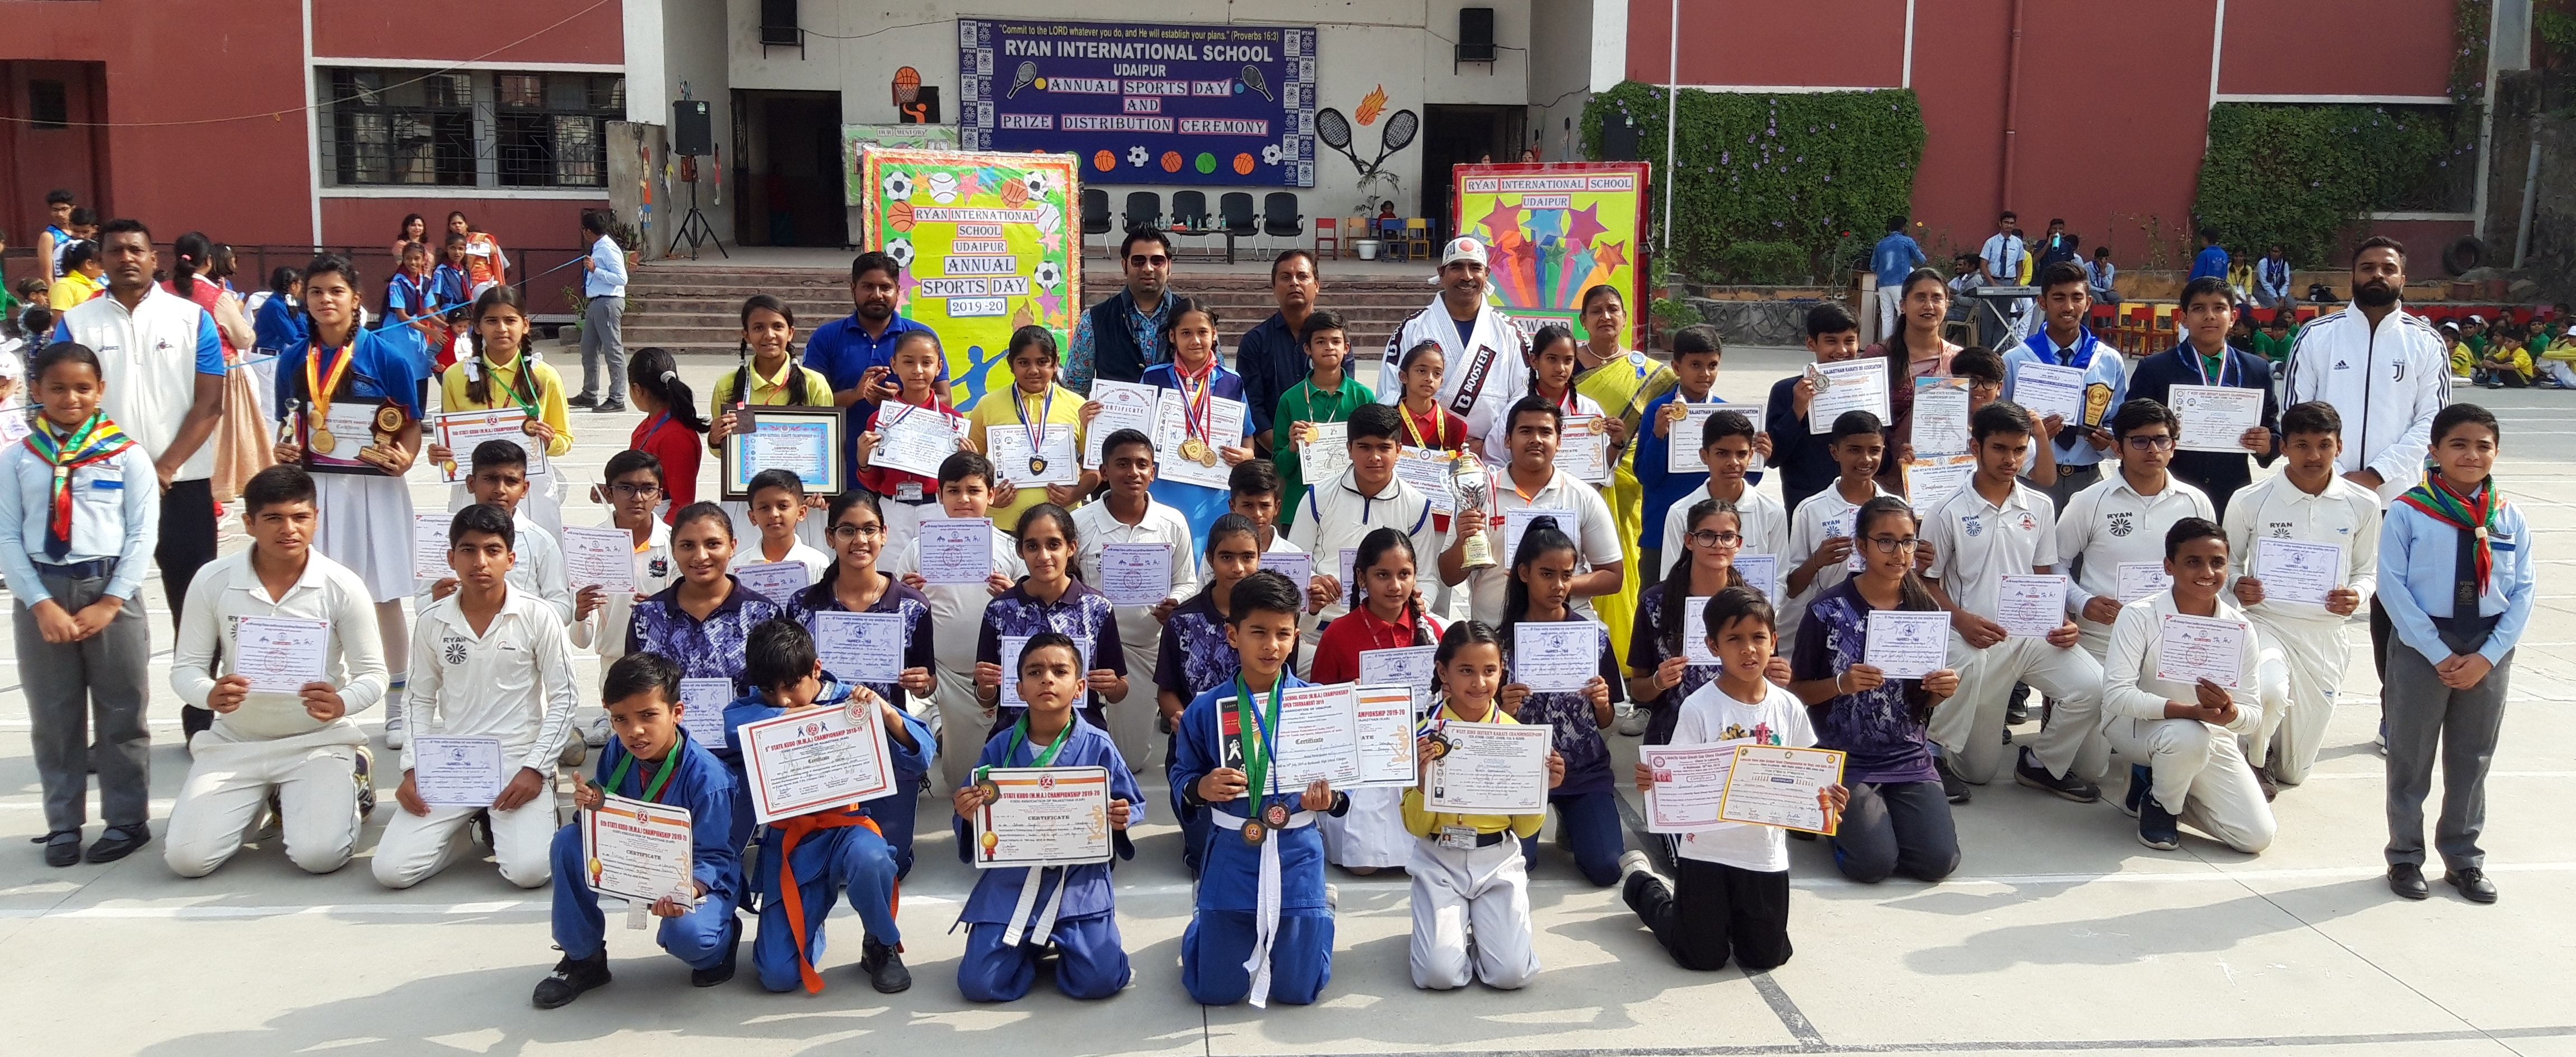 Ryan International School, Udaipur celebrated its Annual Sports Meet for Primary Wing -2019